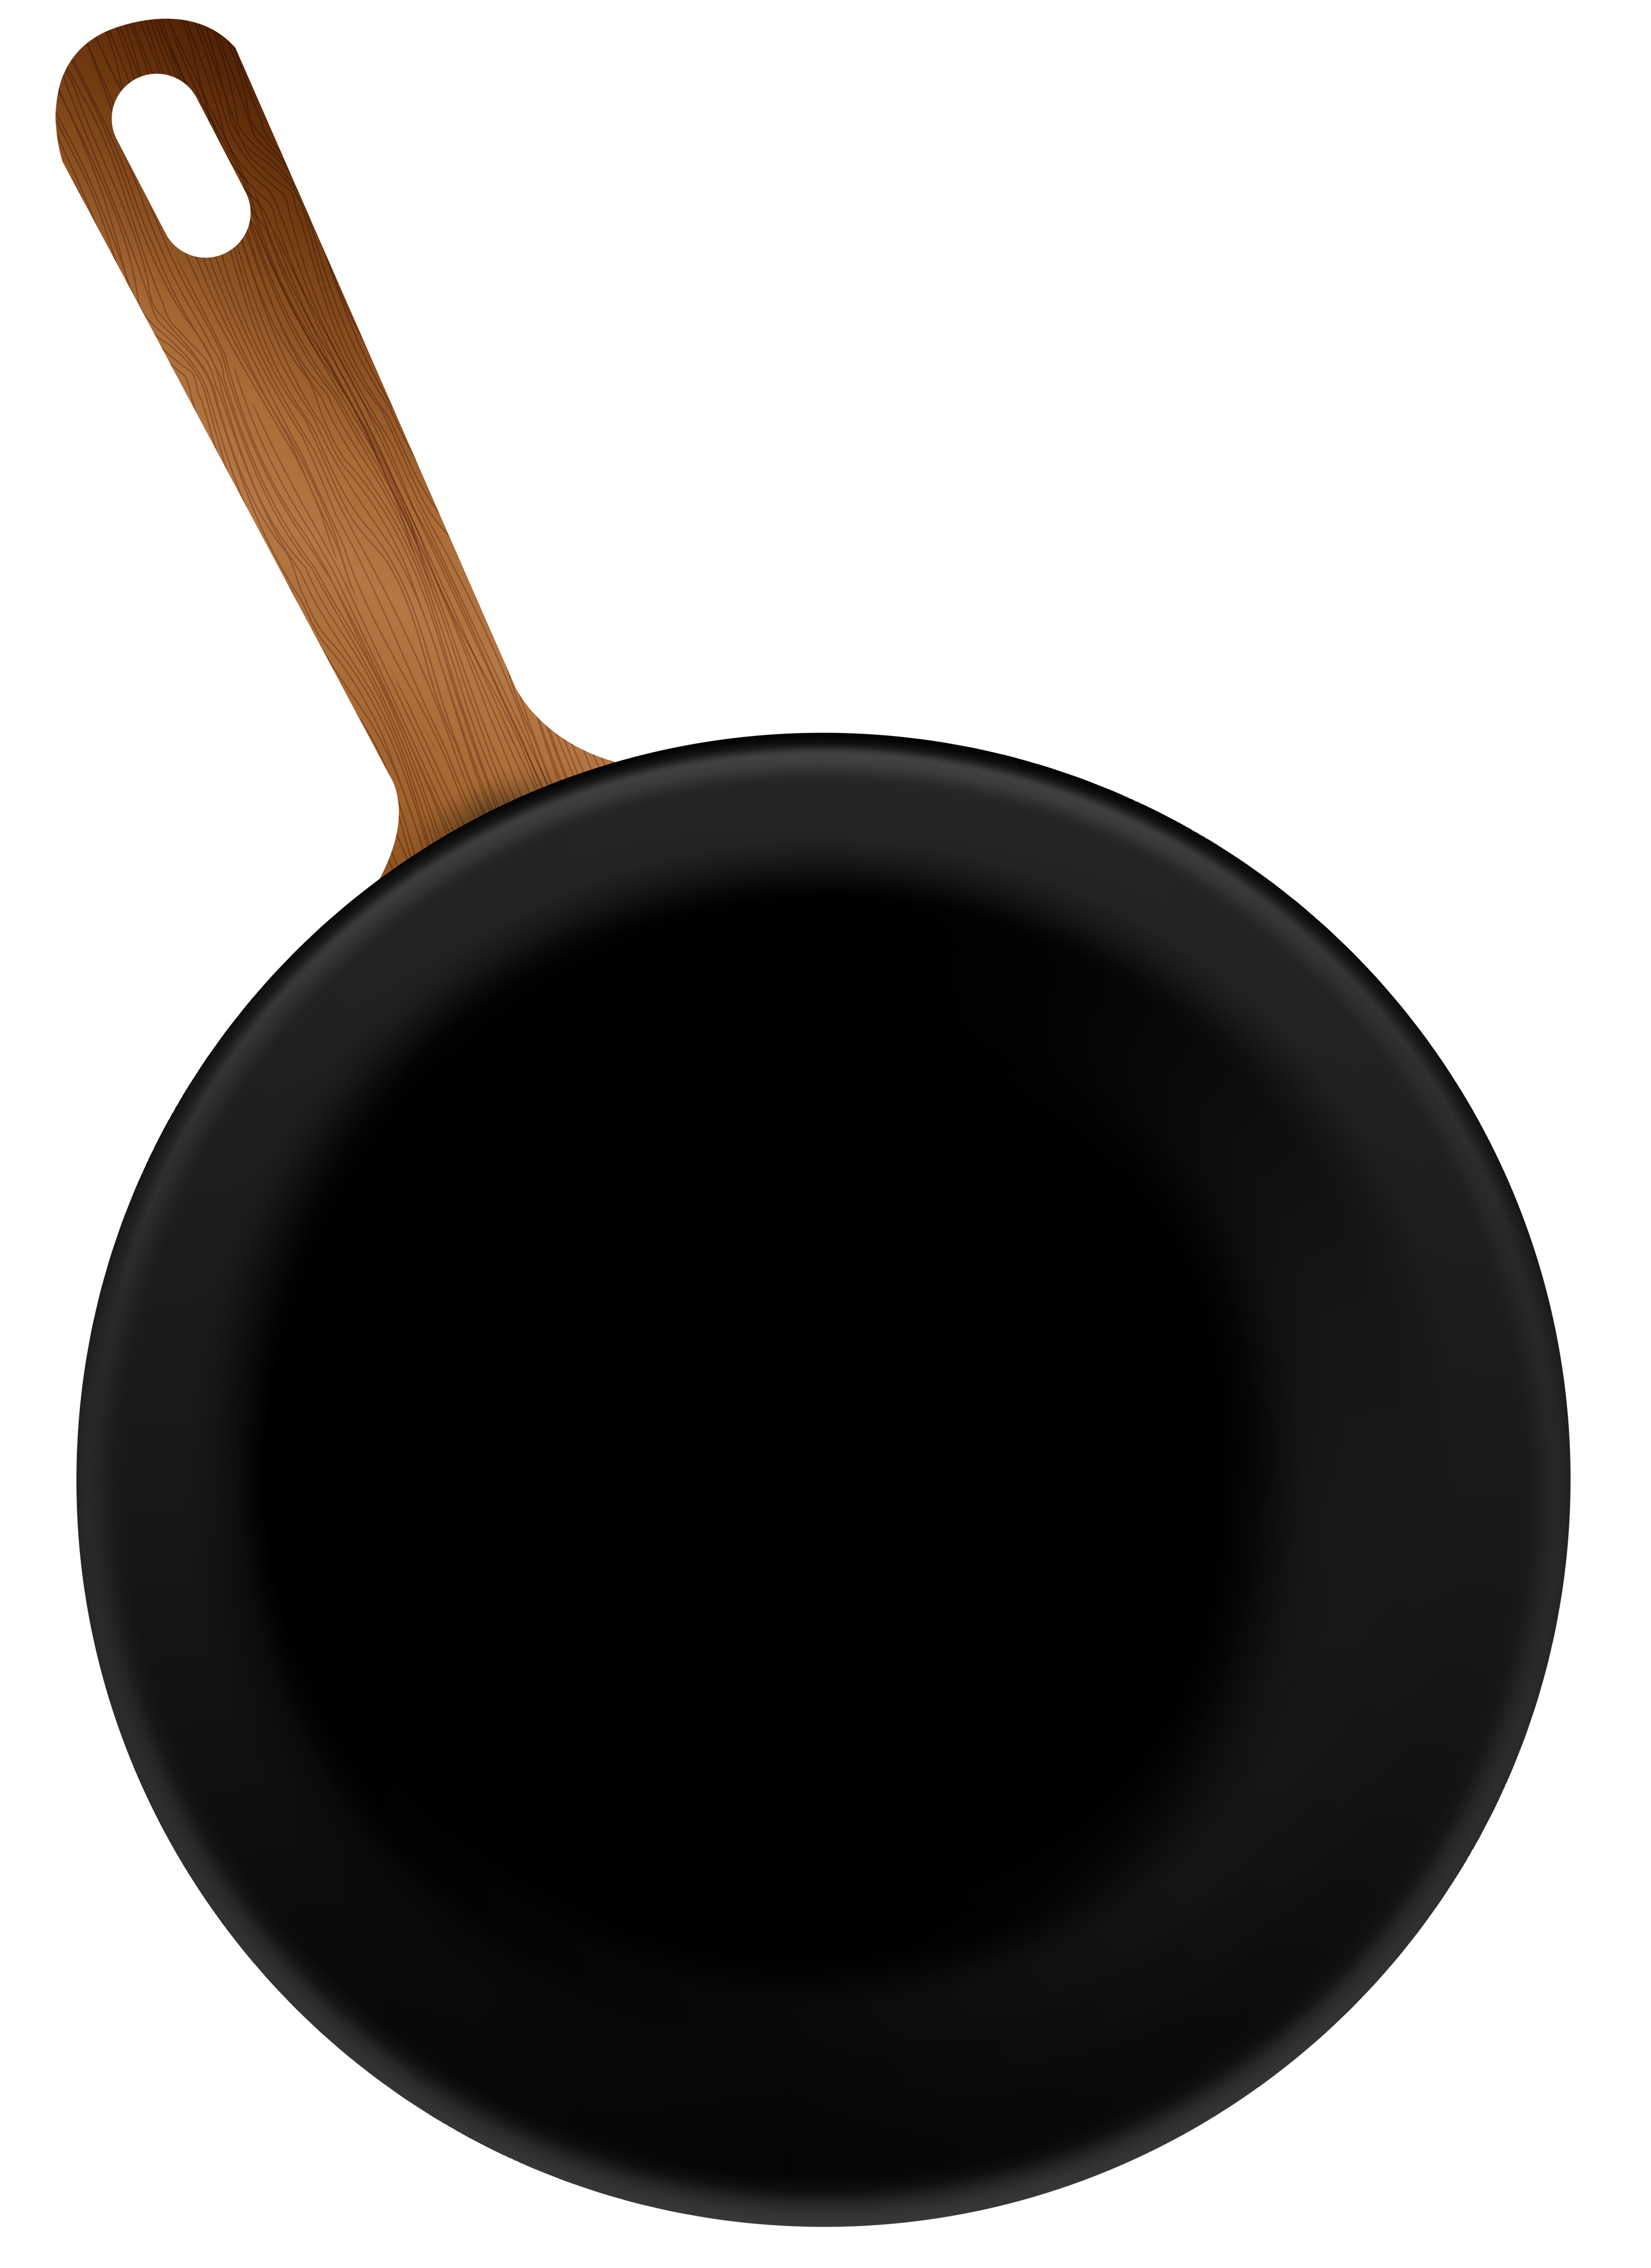 Png best web. Fries clipart hot frying pan